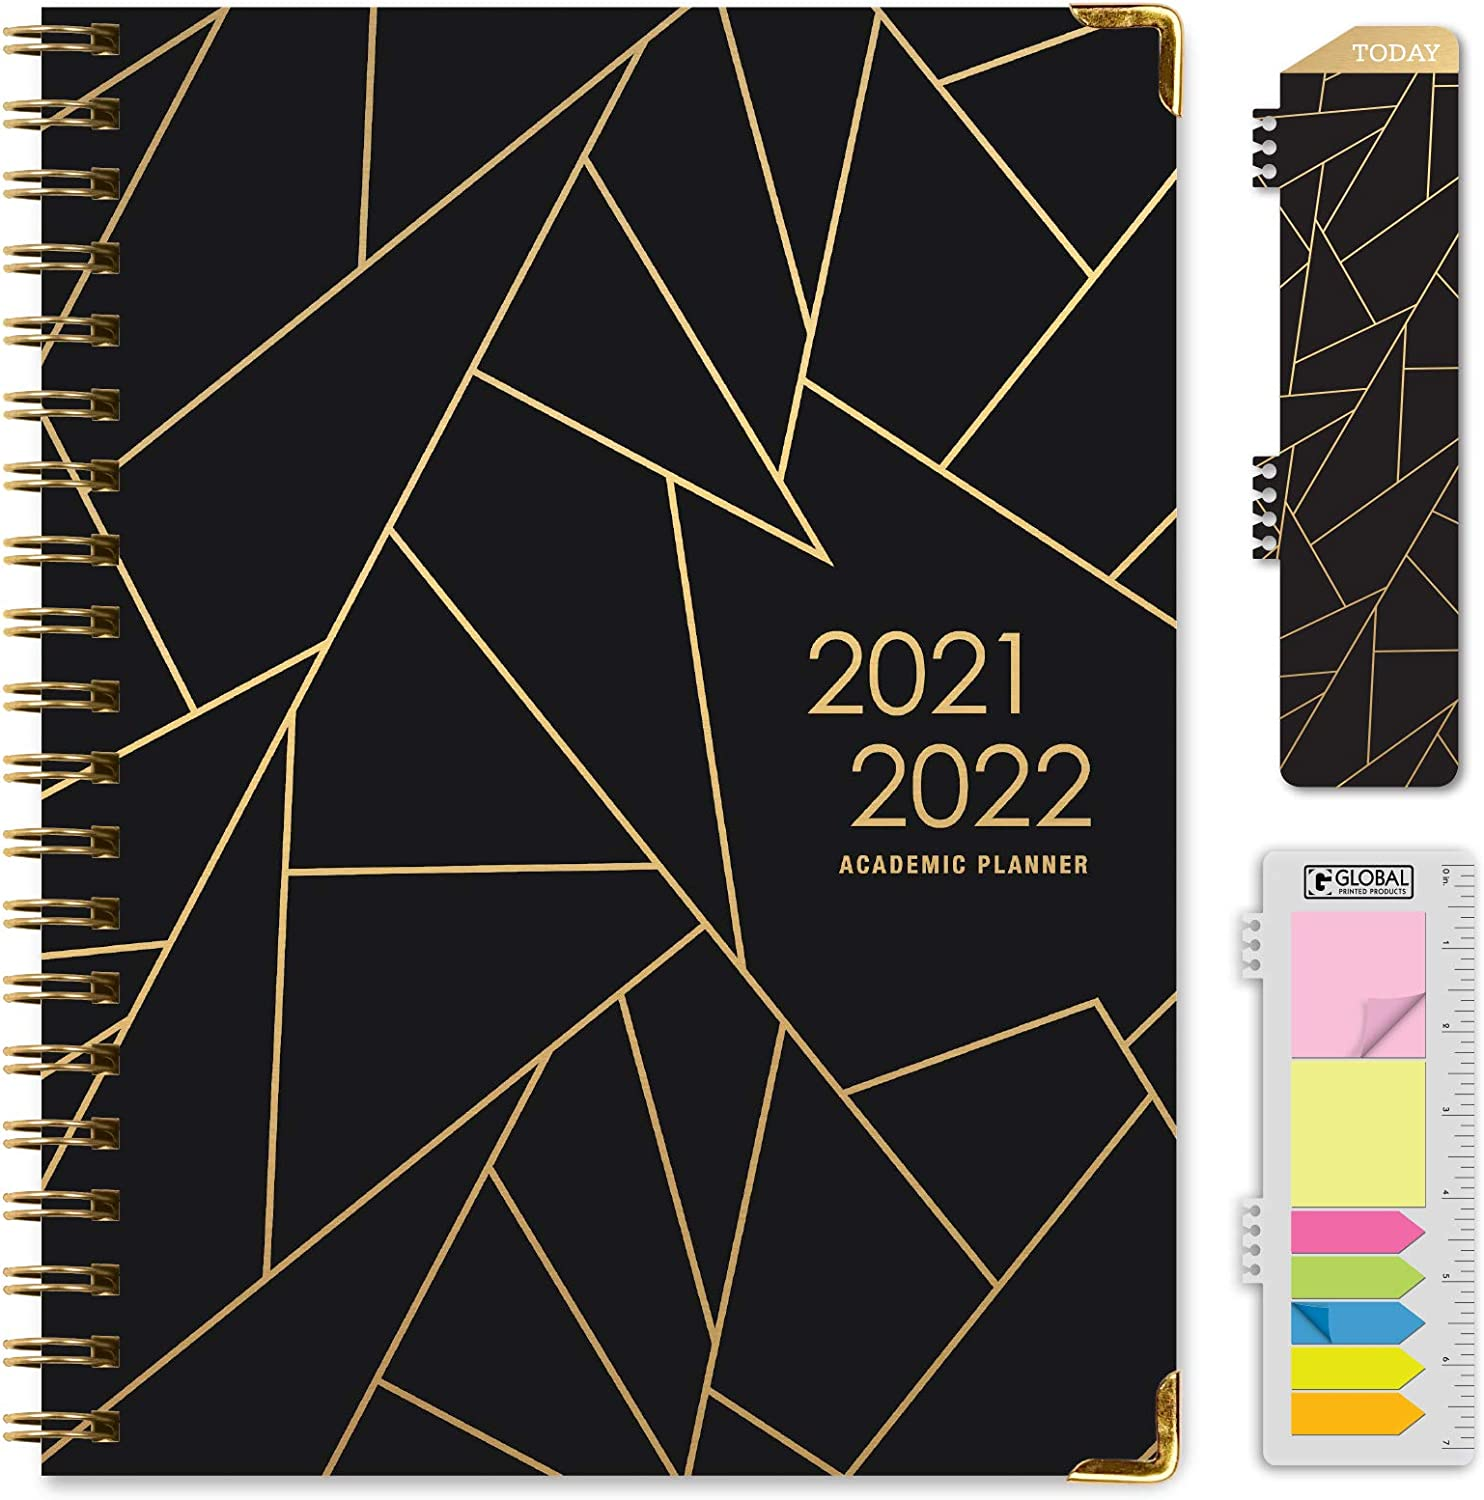 """HARDCOVER Academic Year 2021-2022 Planner: (June 2021 Through July 2022) 8.5""""x11"""" Daily Weekly Monthly Planner Yearly Agenda. Bookmark, Pocket Folder and Sticky Note Set (Black Gold Triangles) : Office Products"""